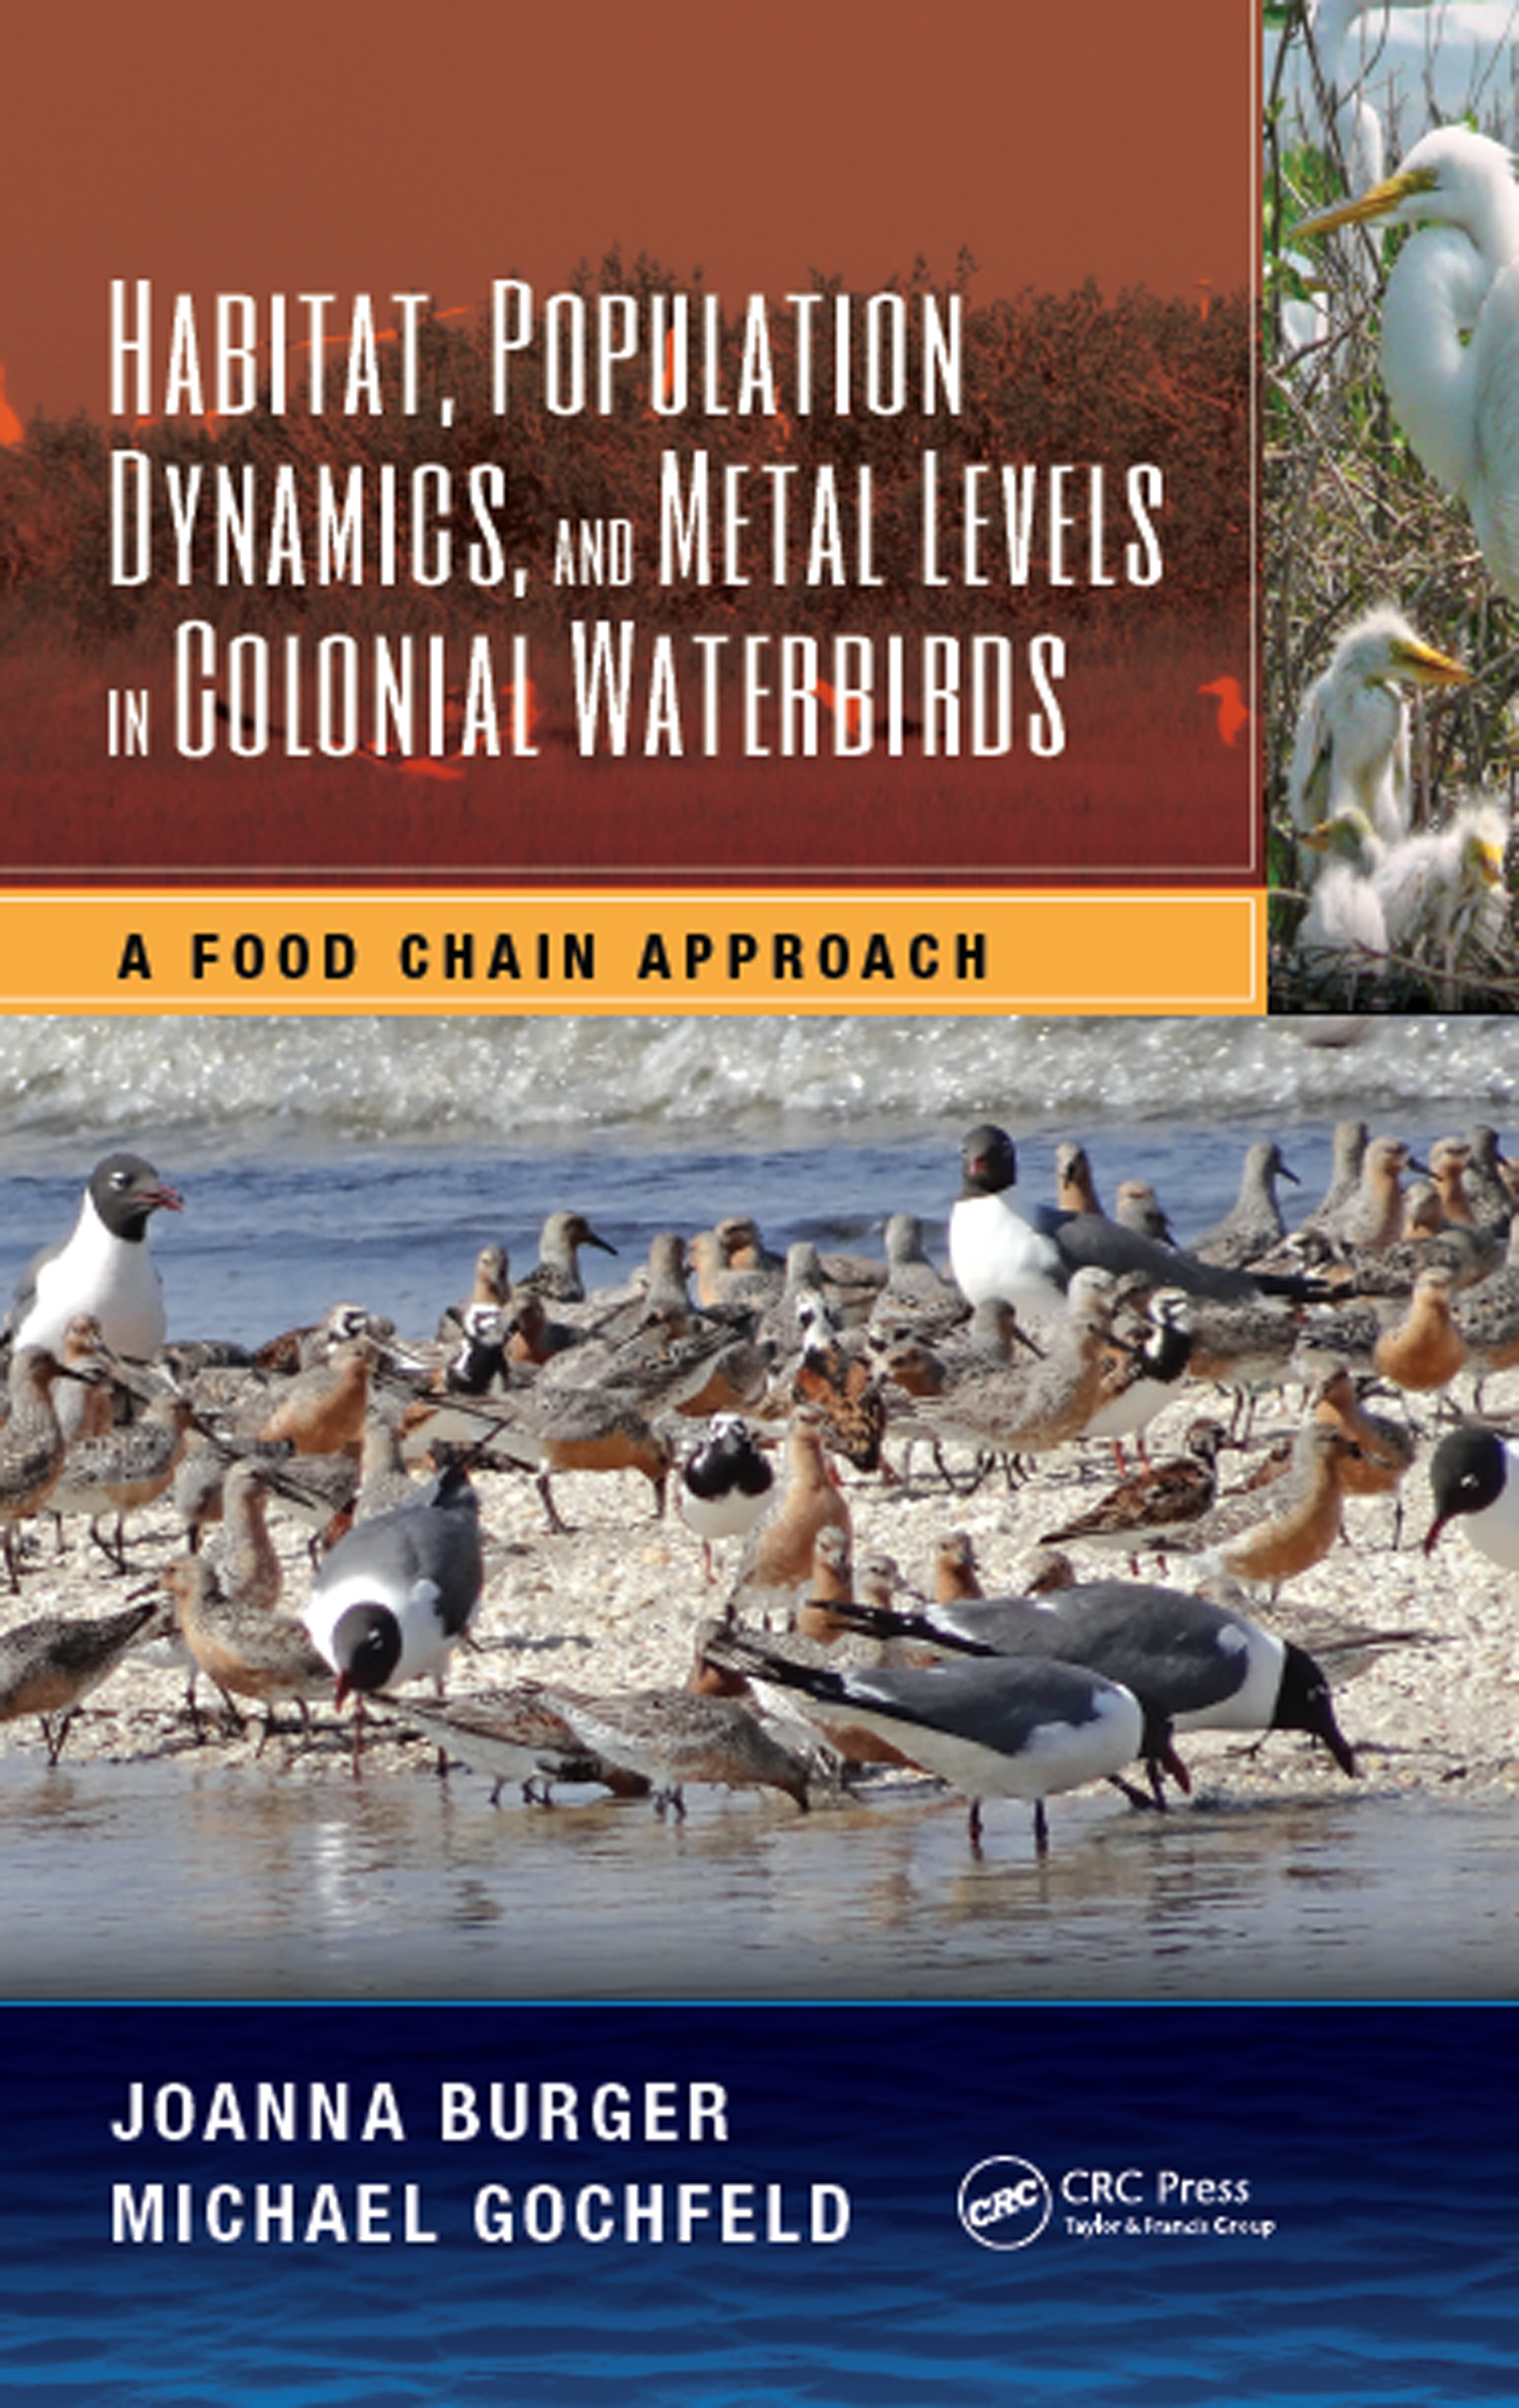 Habitat, Population Dynamics, and Metal Levels in Colonial Waterbirds: A Food Chain Approach book cover